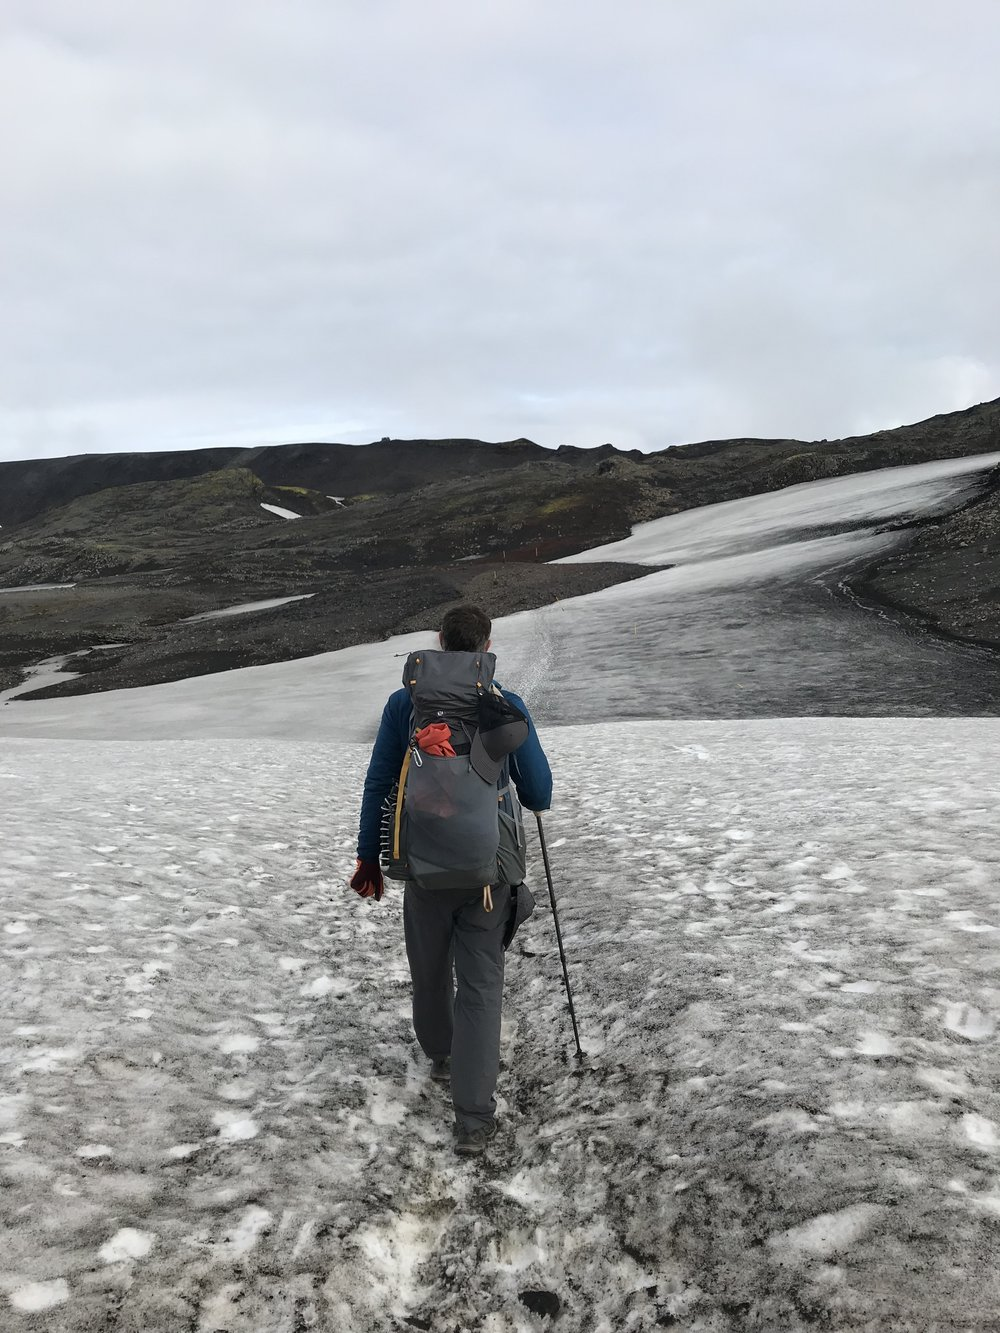 Glacier Crossing on the Fimmvorouhals Route